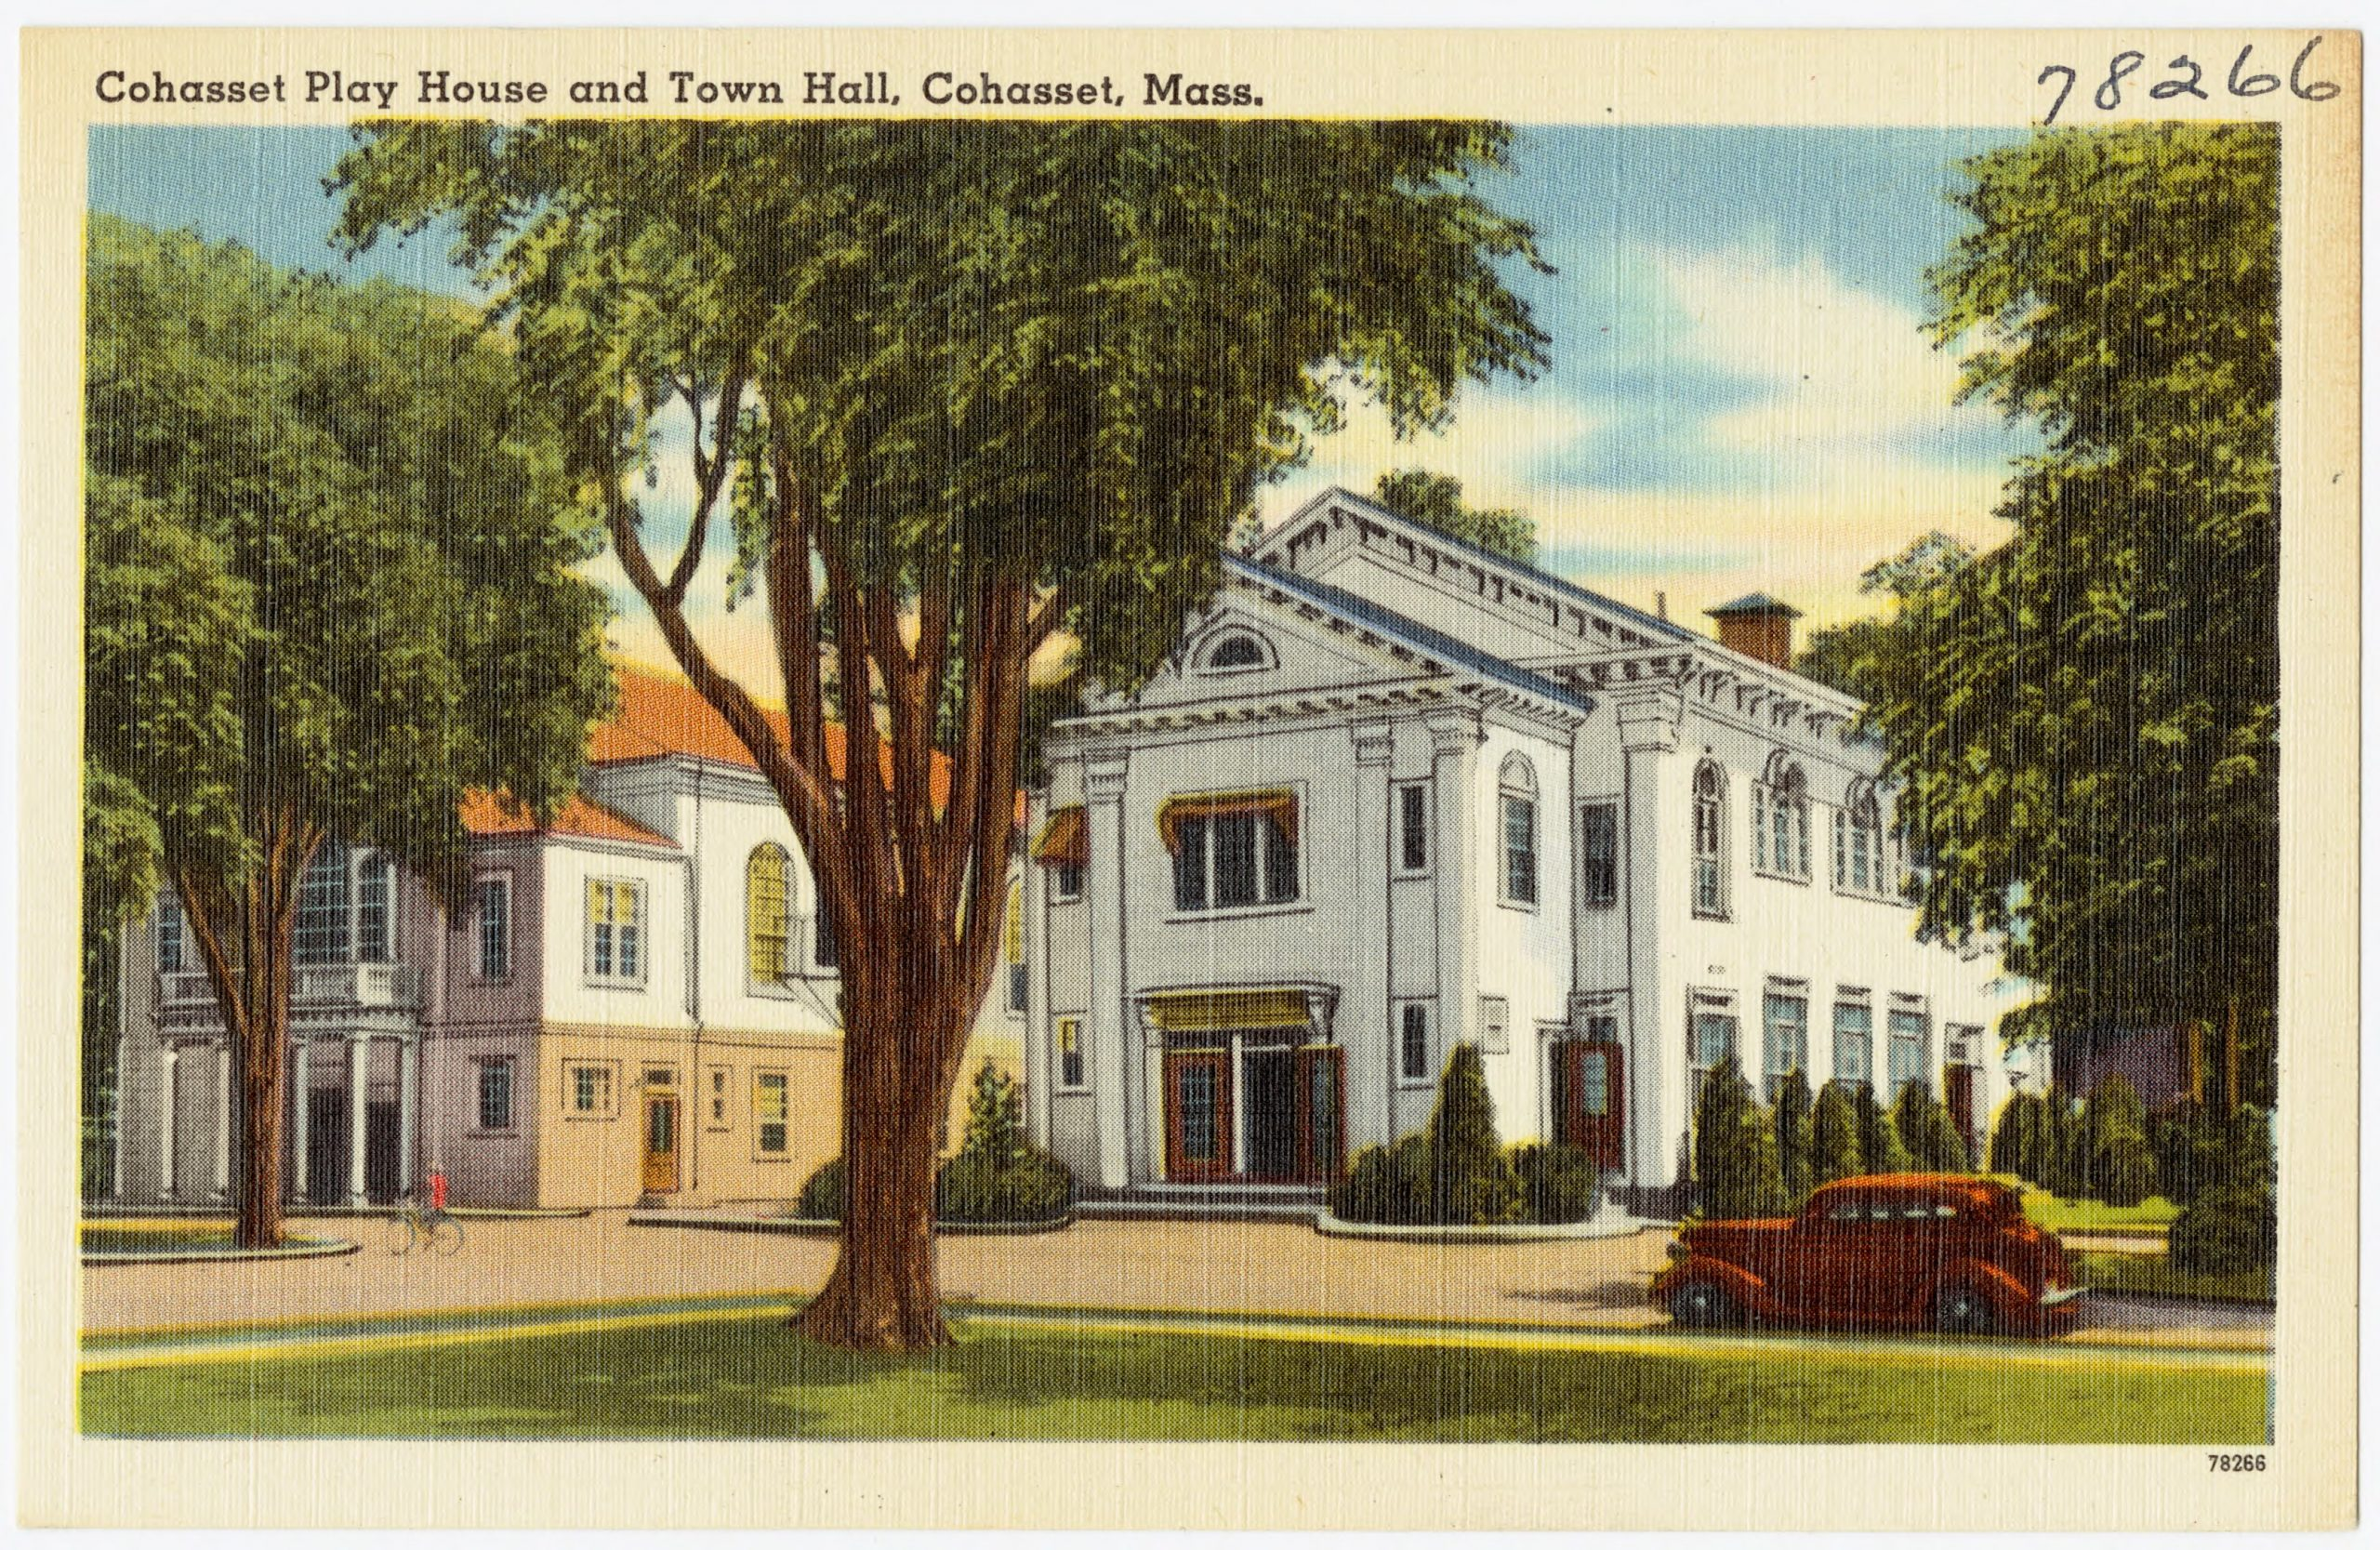 Cohasset Play House and Town Hall